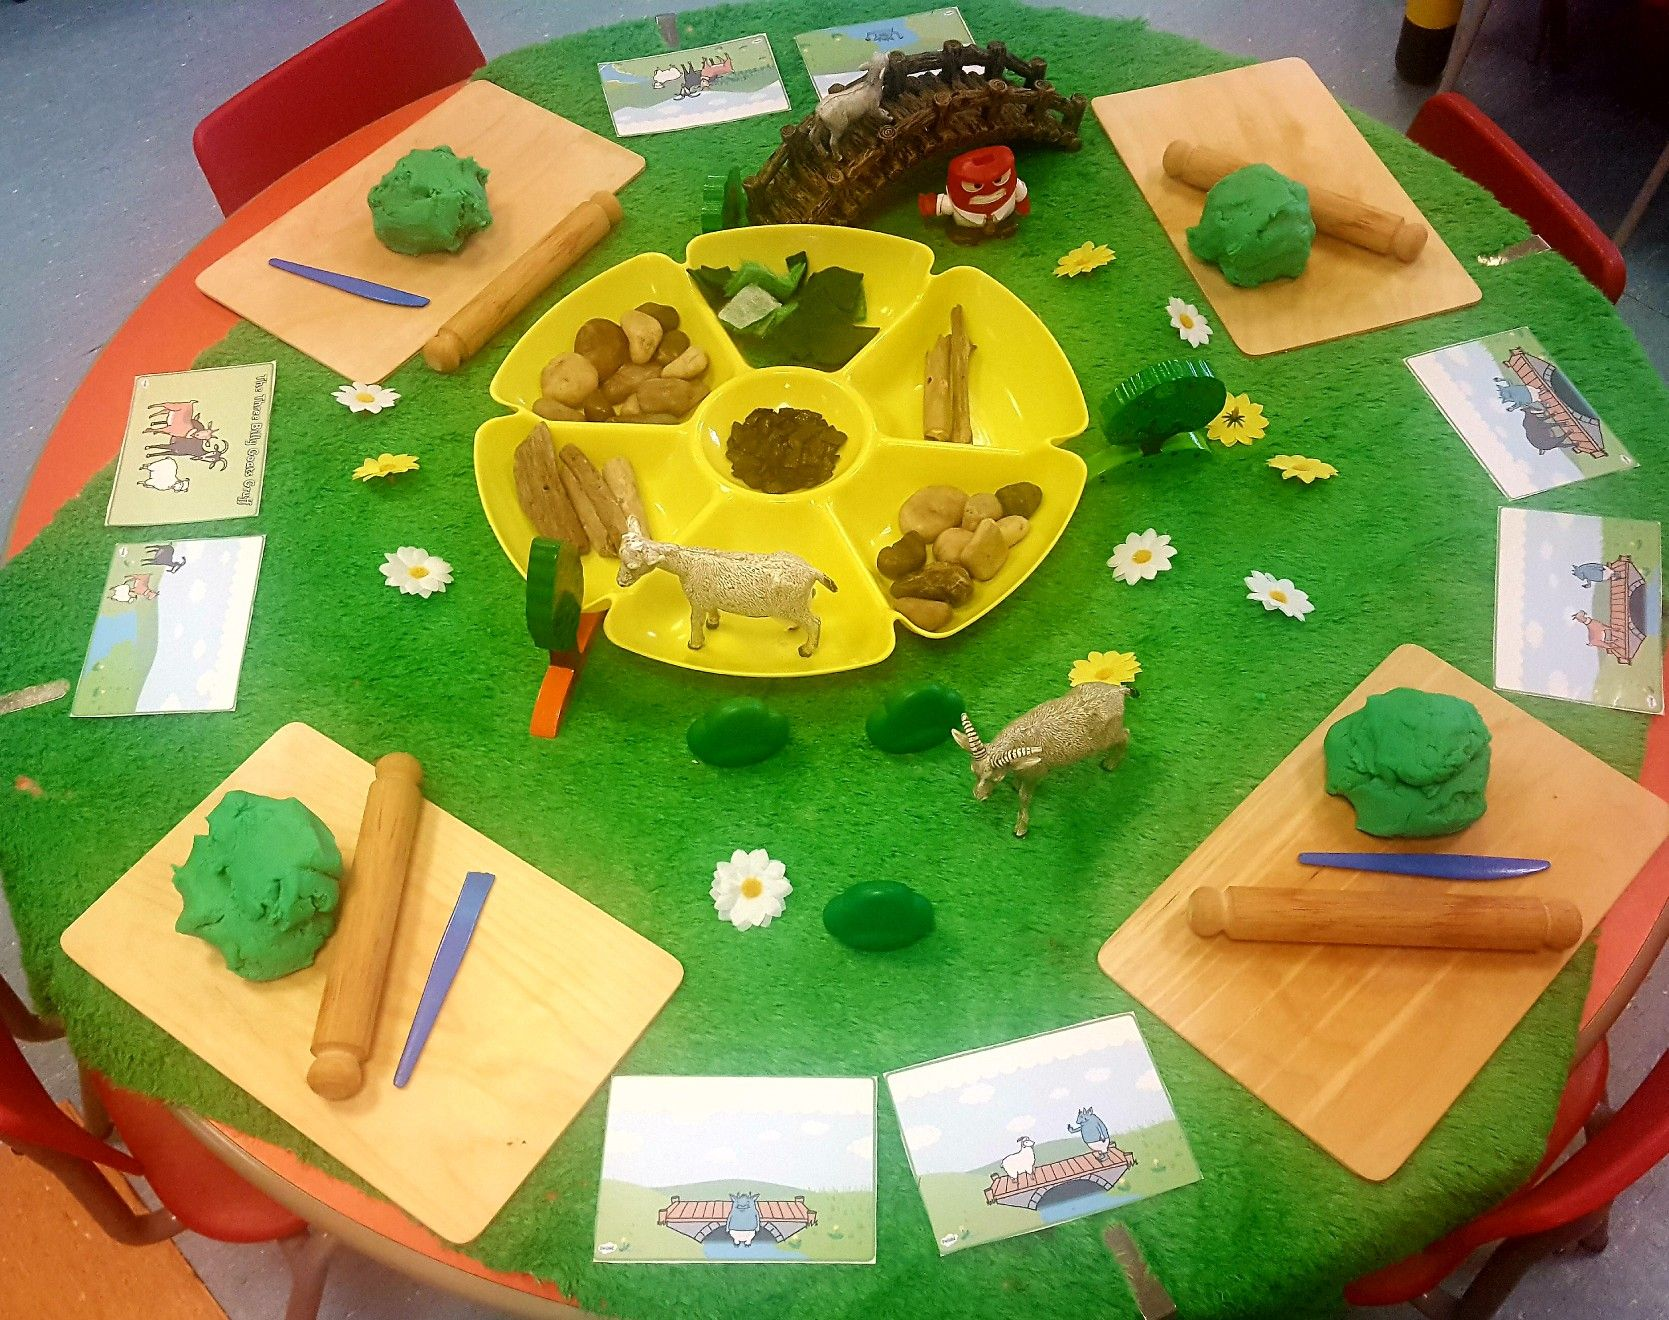 3 Billy Goats Gruff Fairy Tale Inspired With Small World